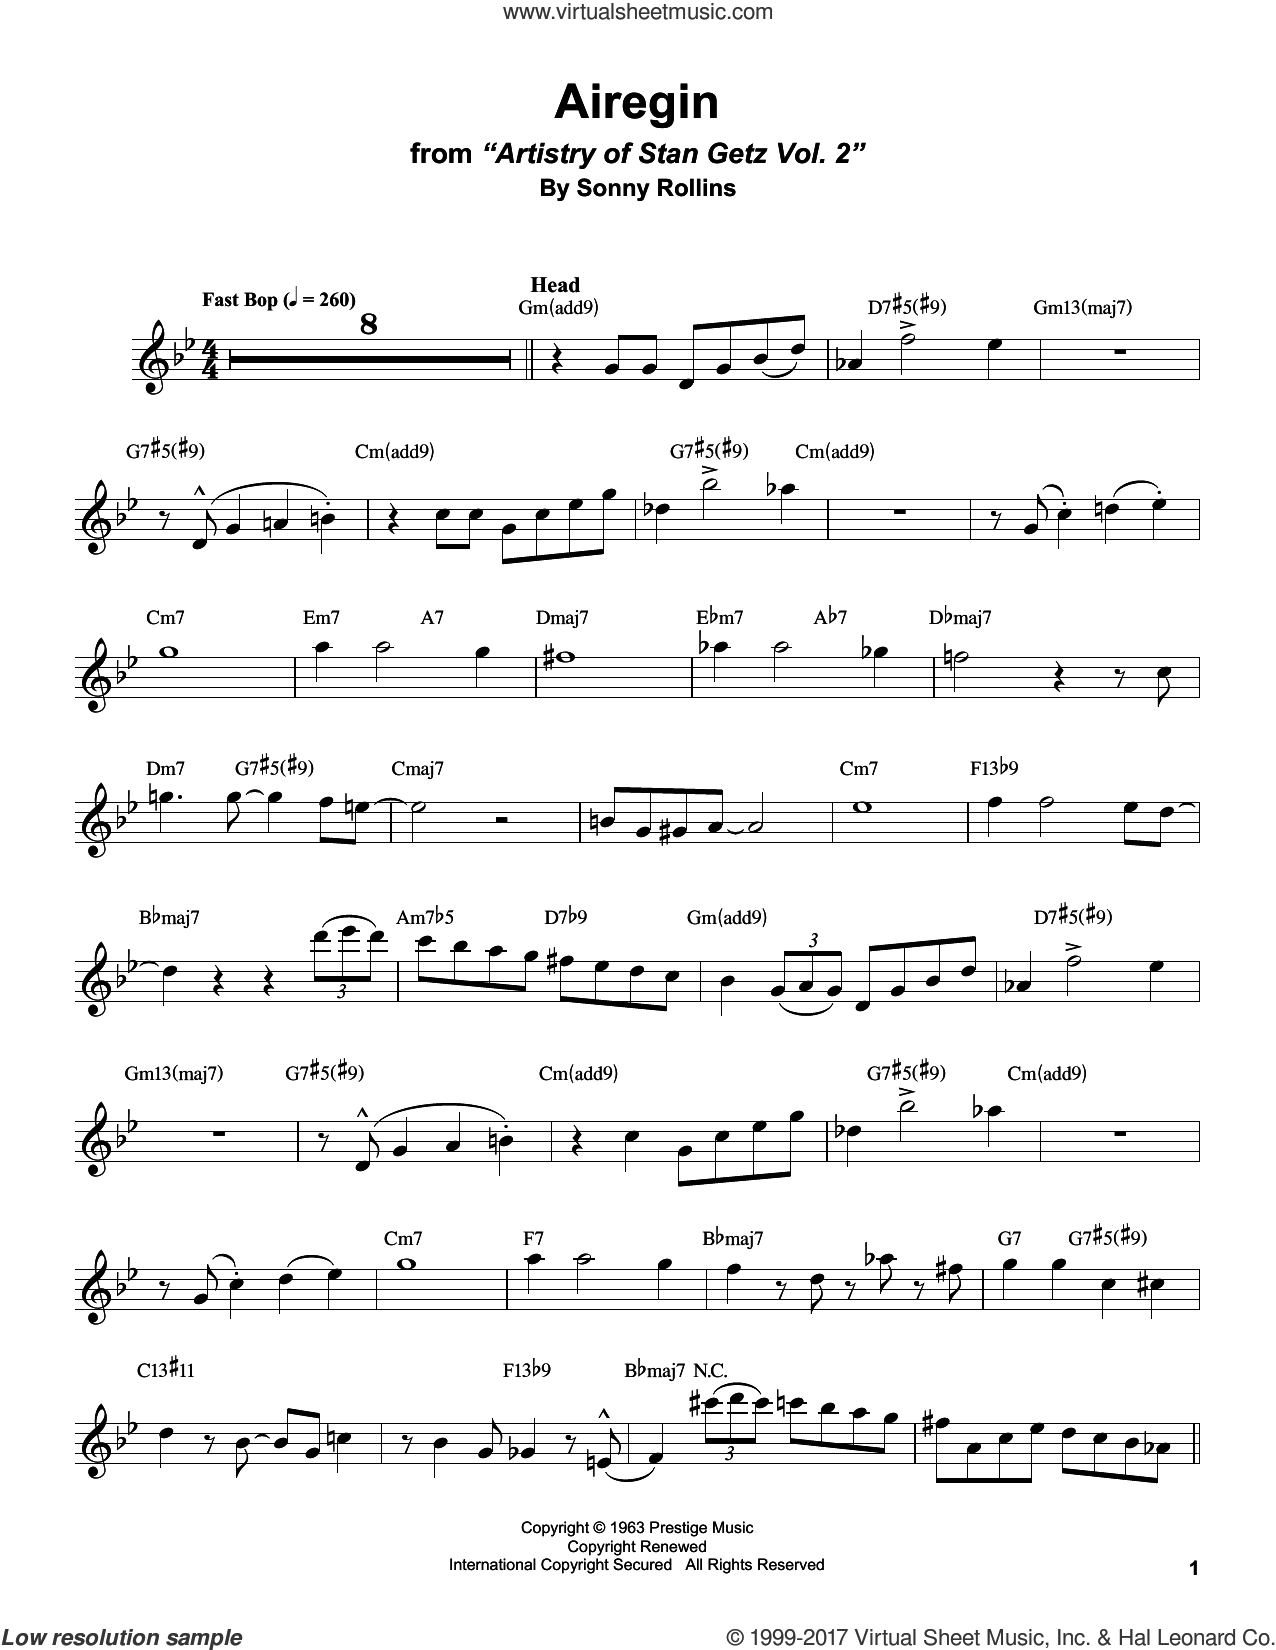 Airegin sheet music for tenor saxophone solo (transcription) by Stan Getz, John Coltrane and Sonny Rollins, intermediate tenor saxophone (transcription)